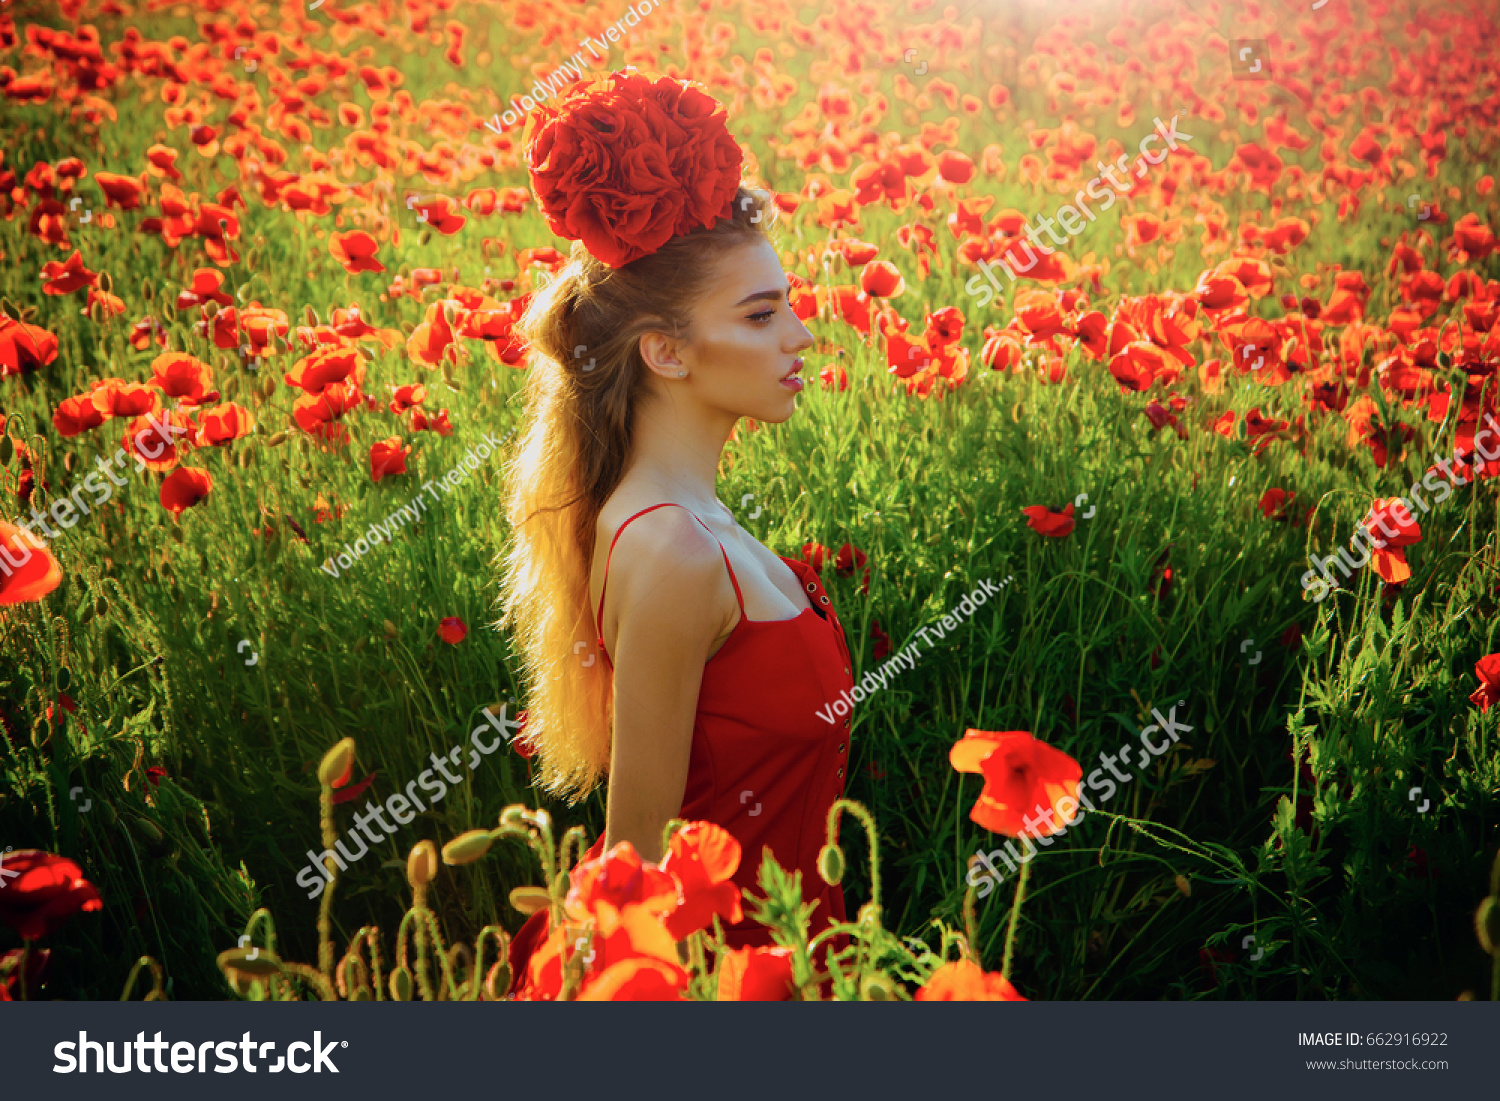 Girl With Long Curly Hair In Red Dress Hold Flower Bouquet In Field